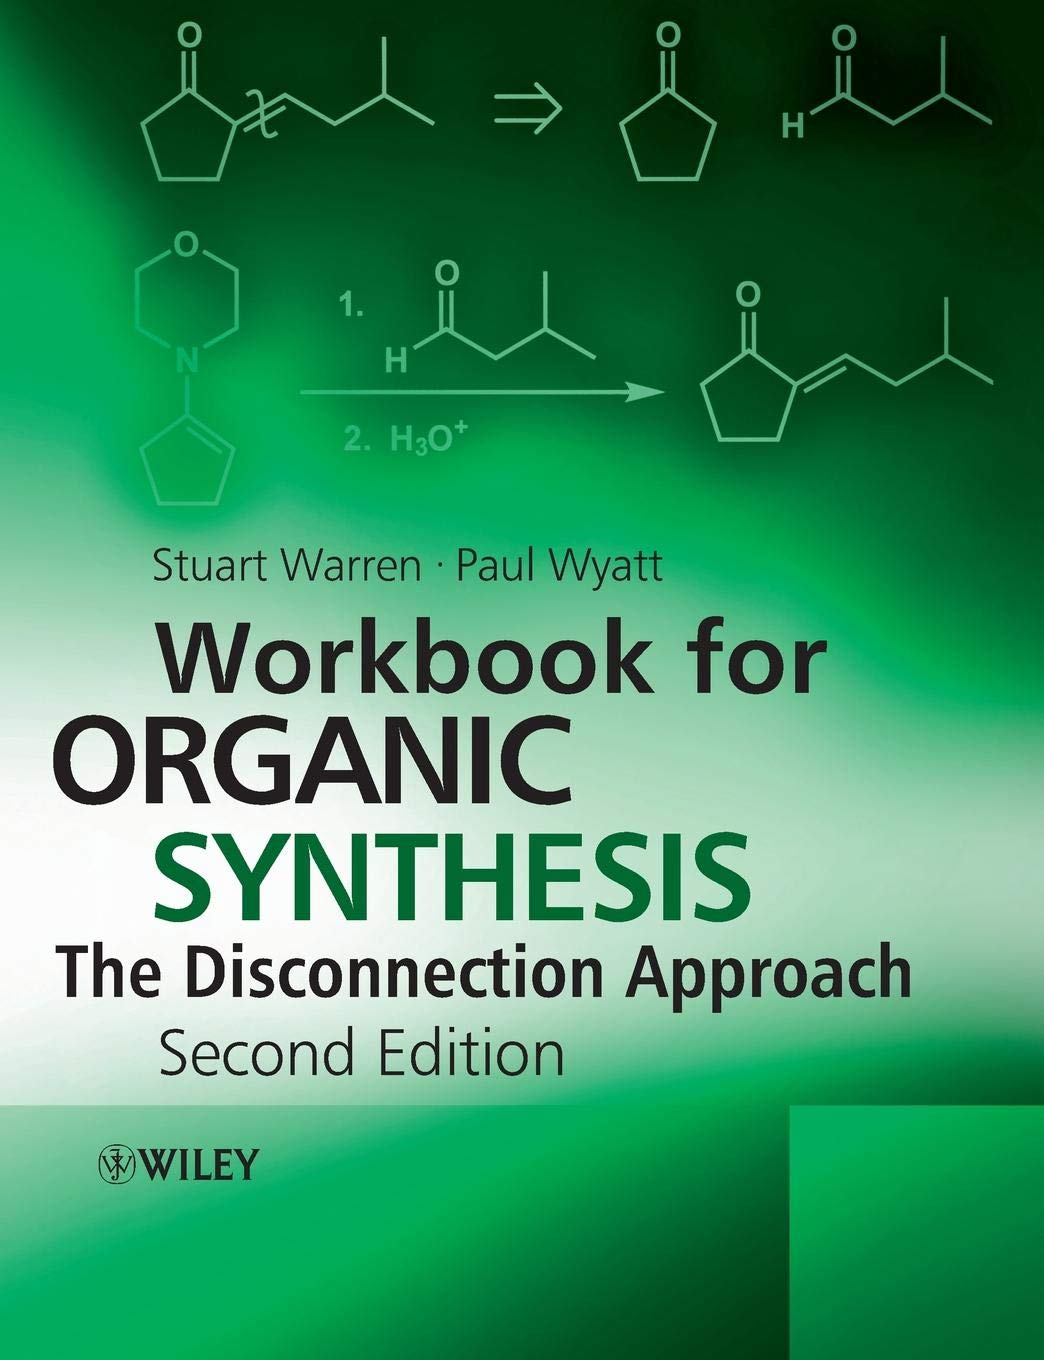 Workbook For Organic Synthesis  The Disconnection Approach 2nd Edition